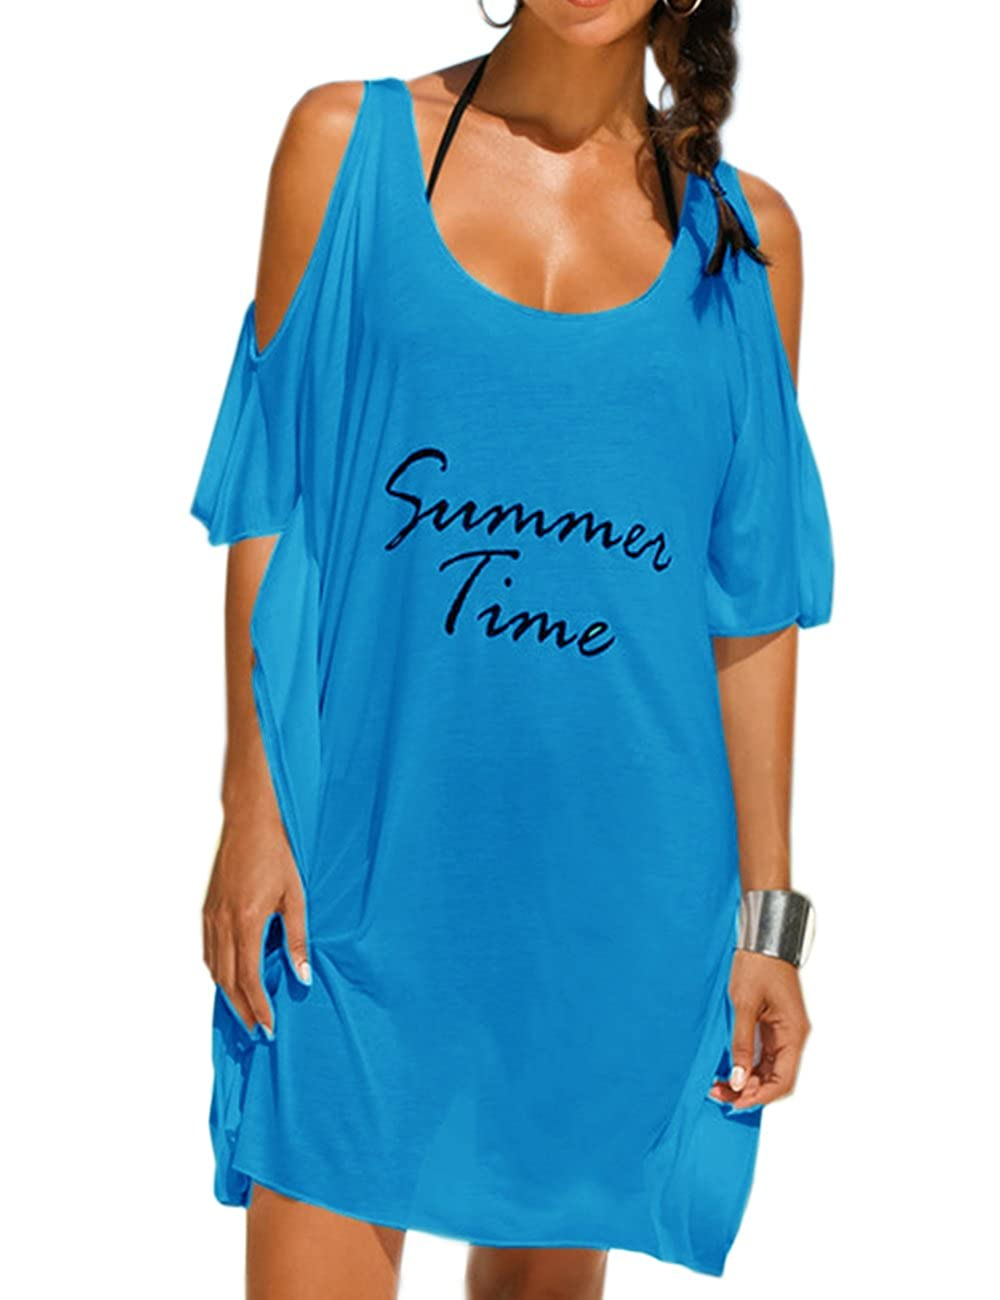 Sexyshine Women's Baggy Letters Print Beach Dress Summer Swimwear Bikini Cover-UPS WBC8822AB-SU